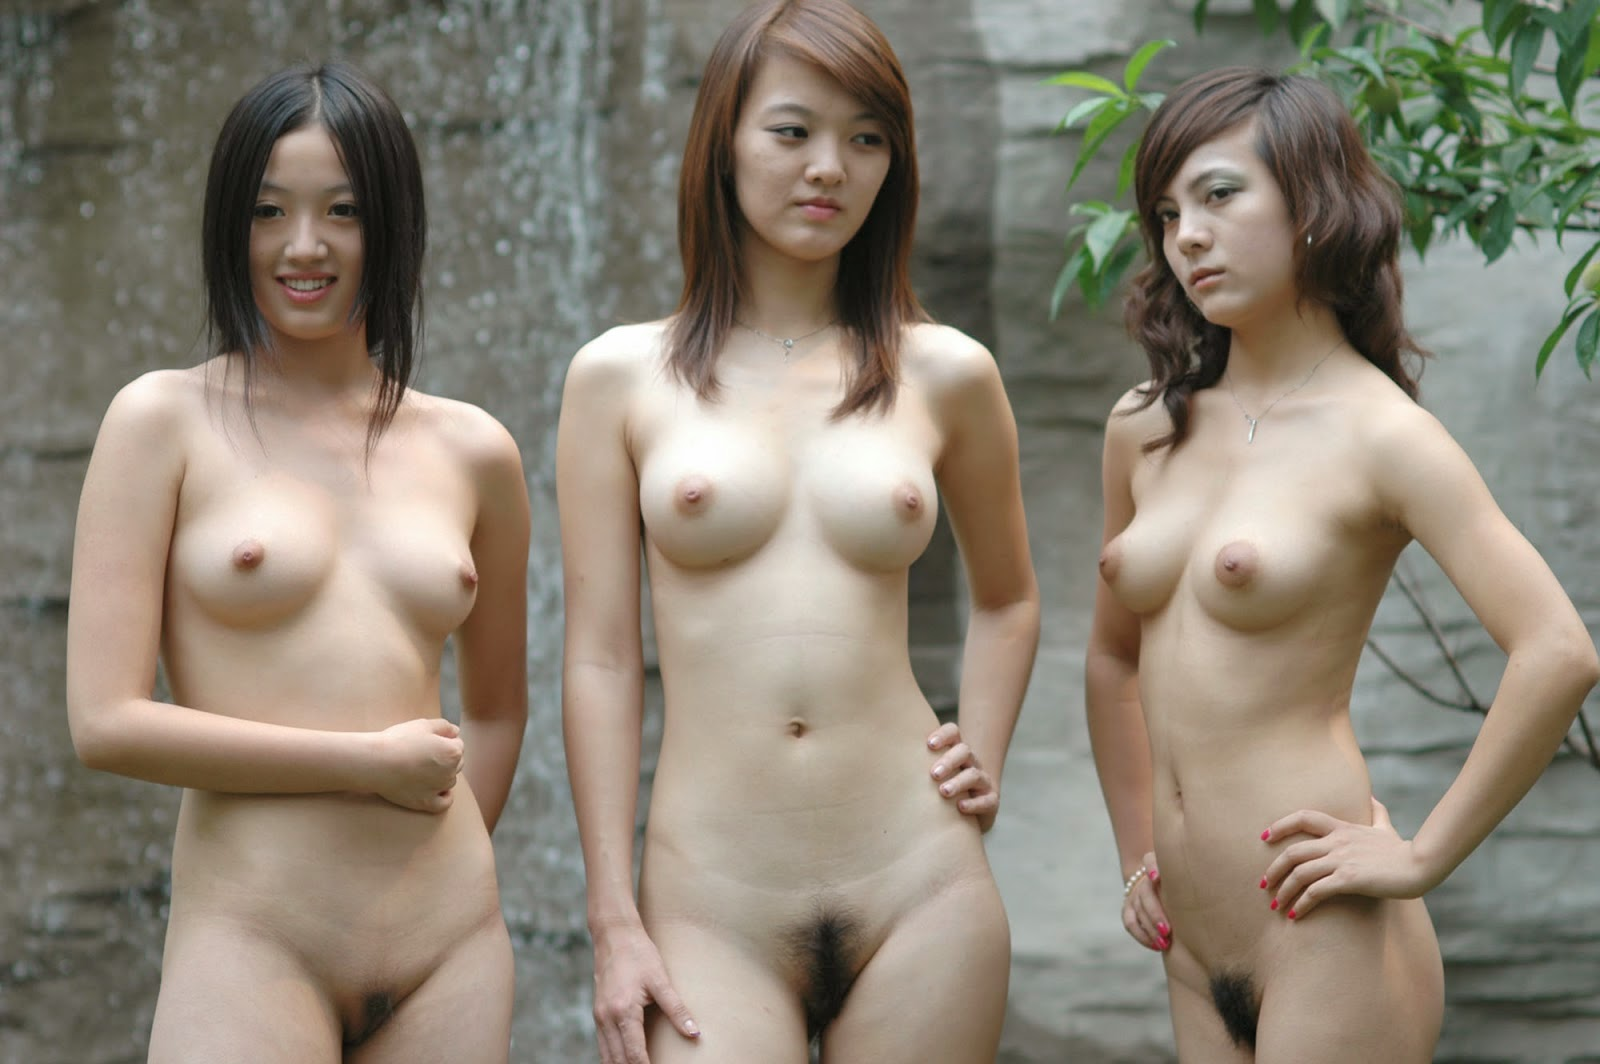 free-neked-women-indonesia-foto-porn-shoved-her